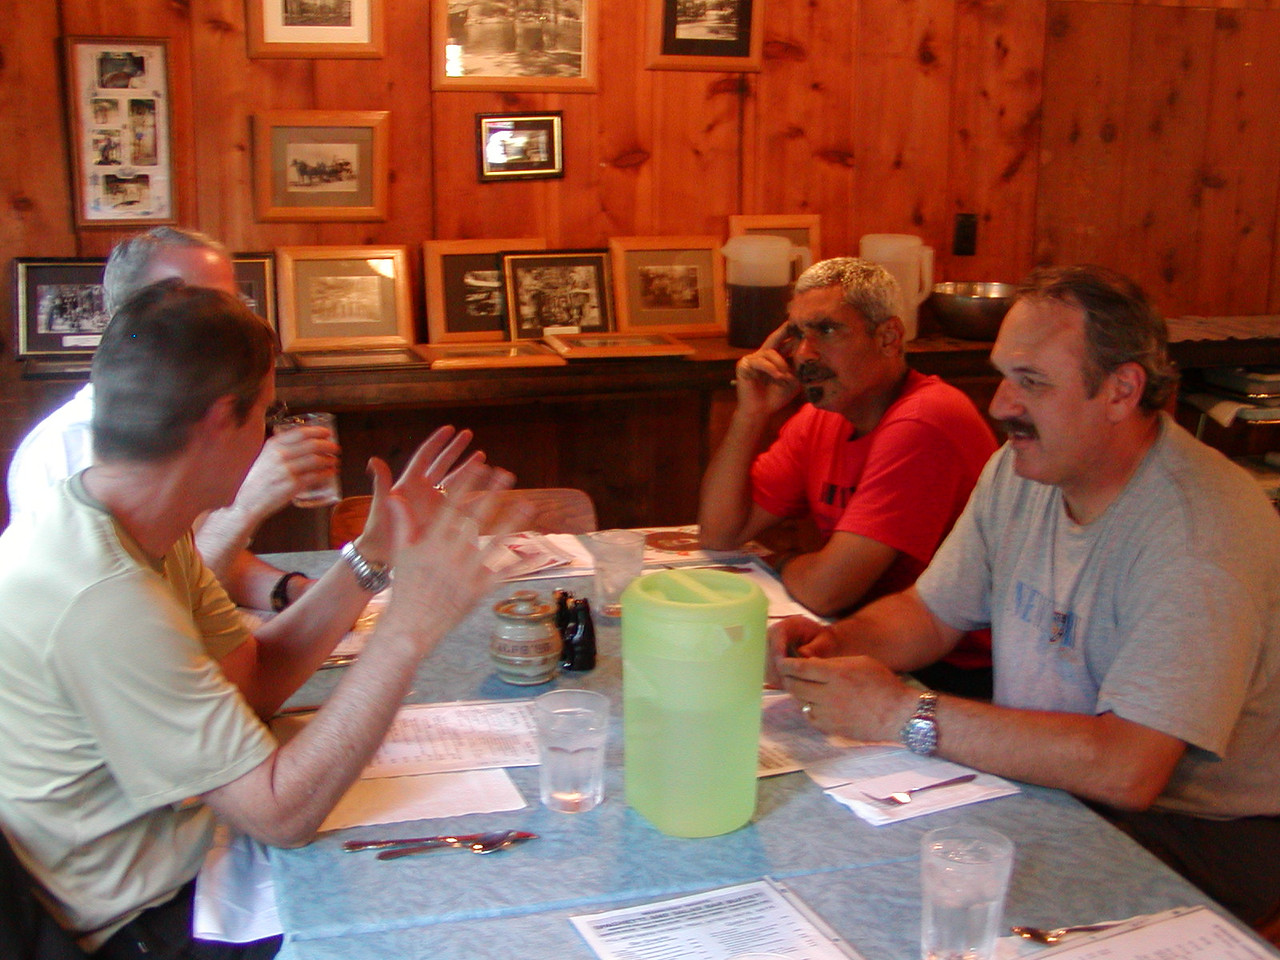 Animated conversation at Stony Creek Resort Bar and Grill